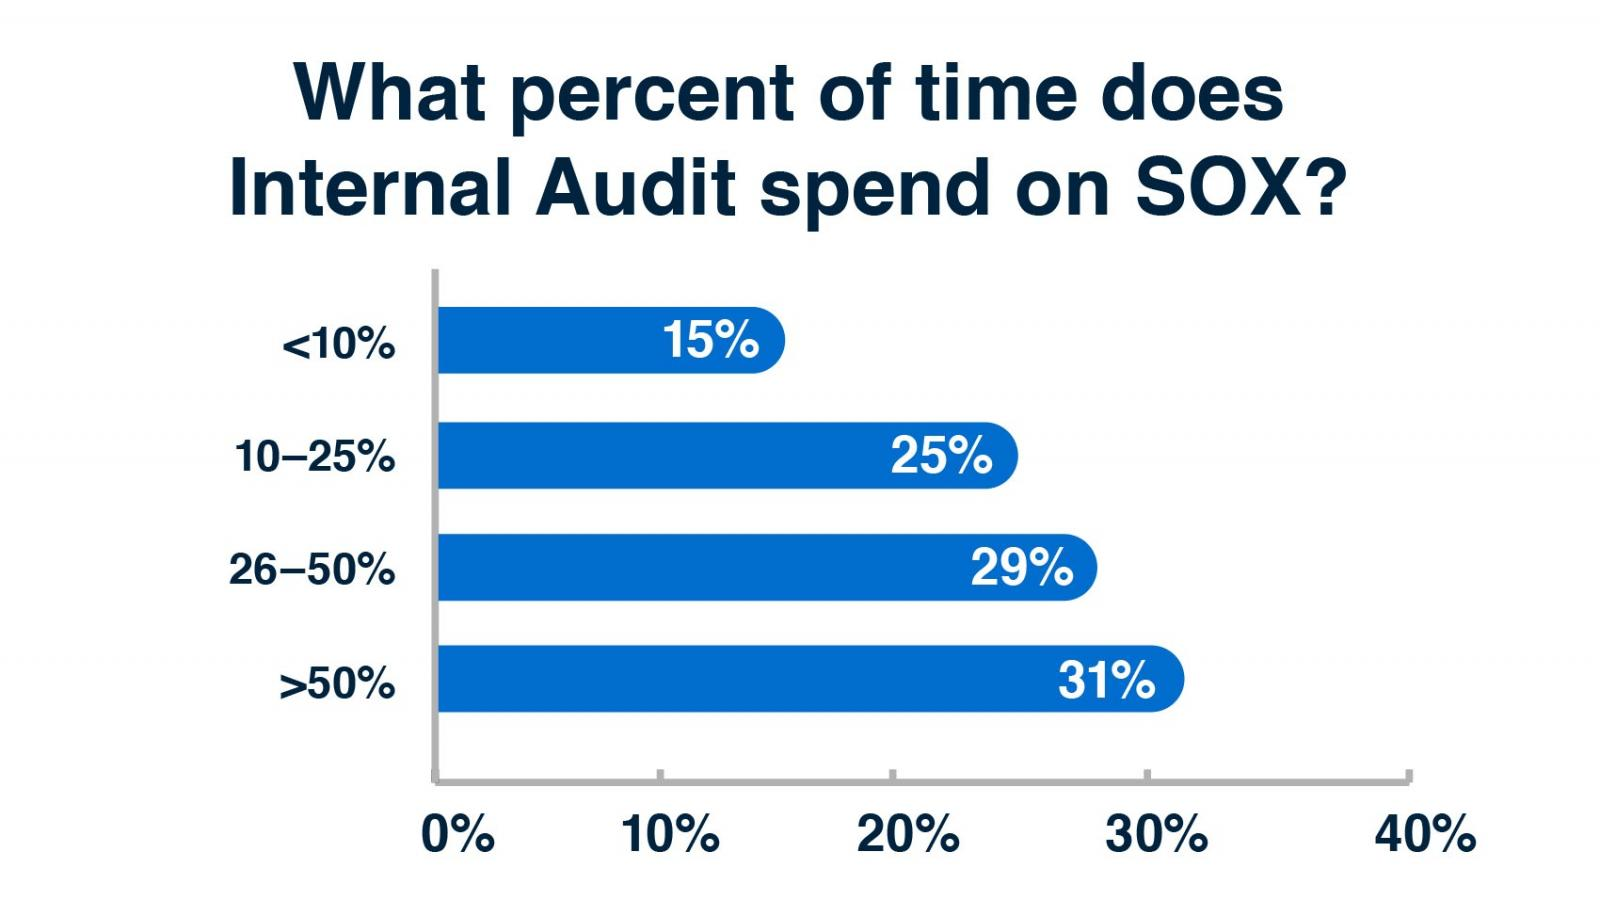 What percent of time does internal audit spend on SOX?